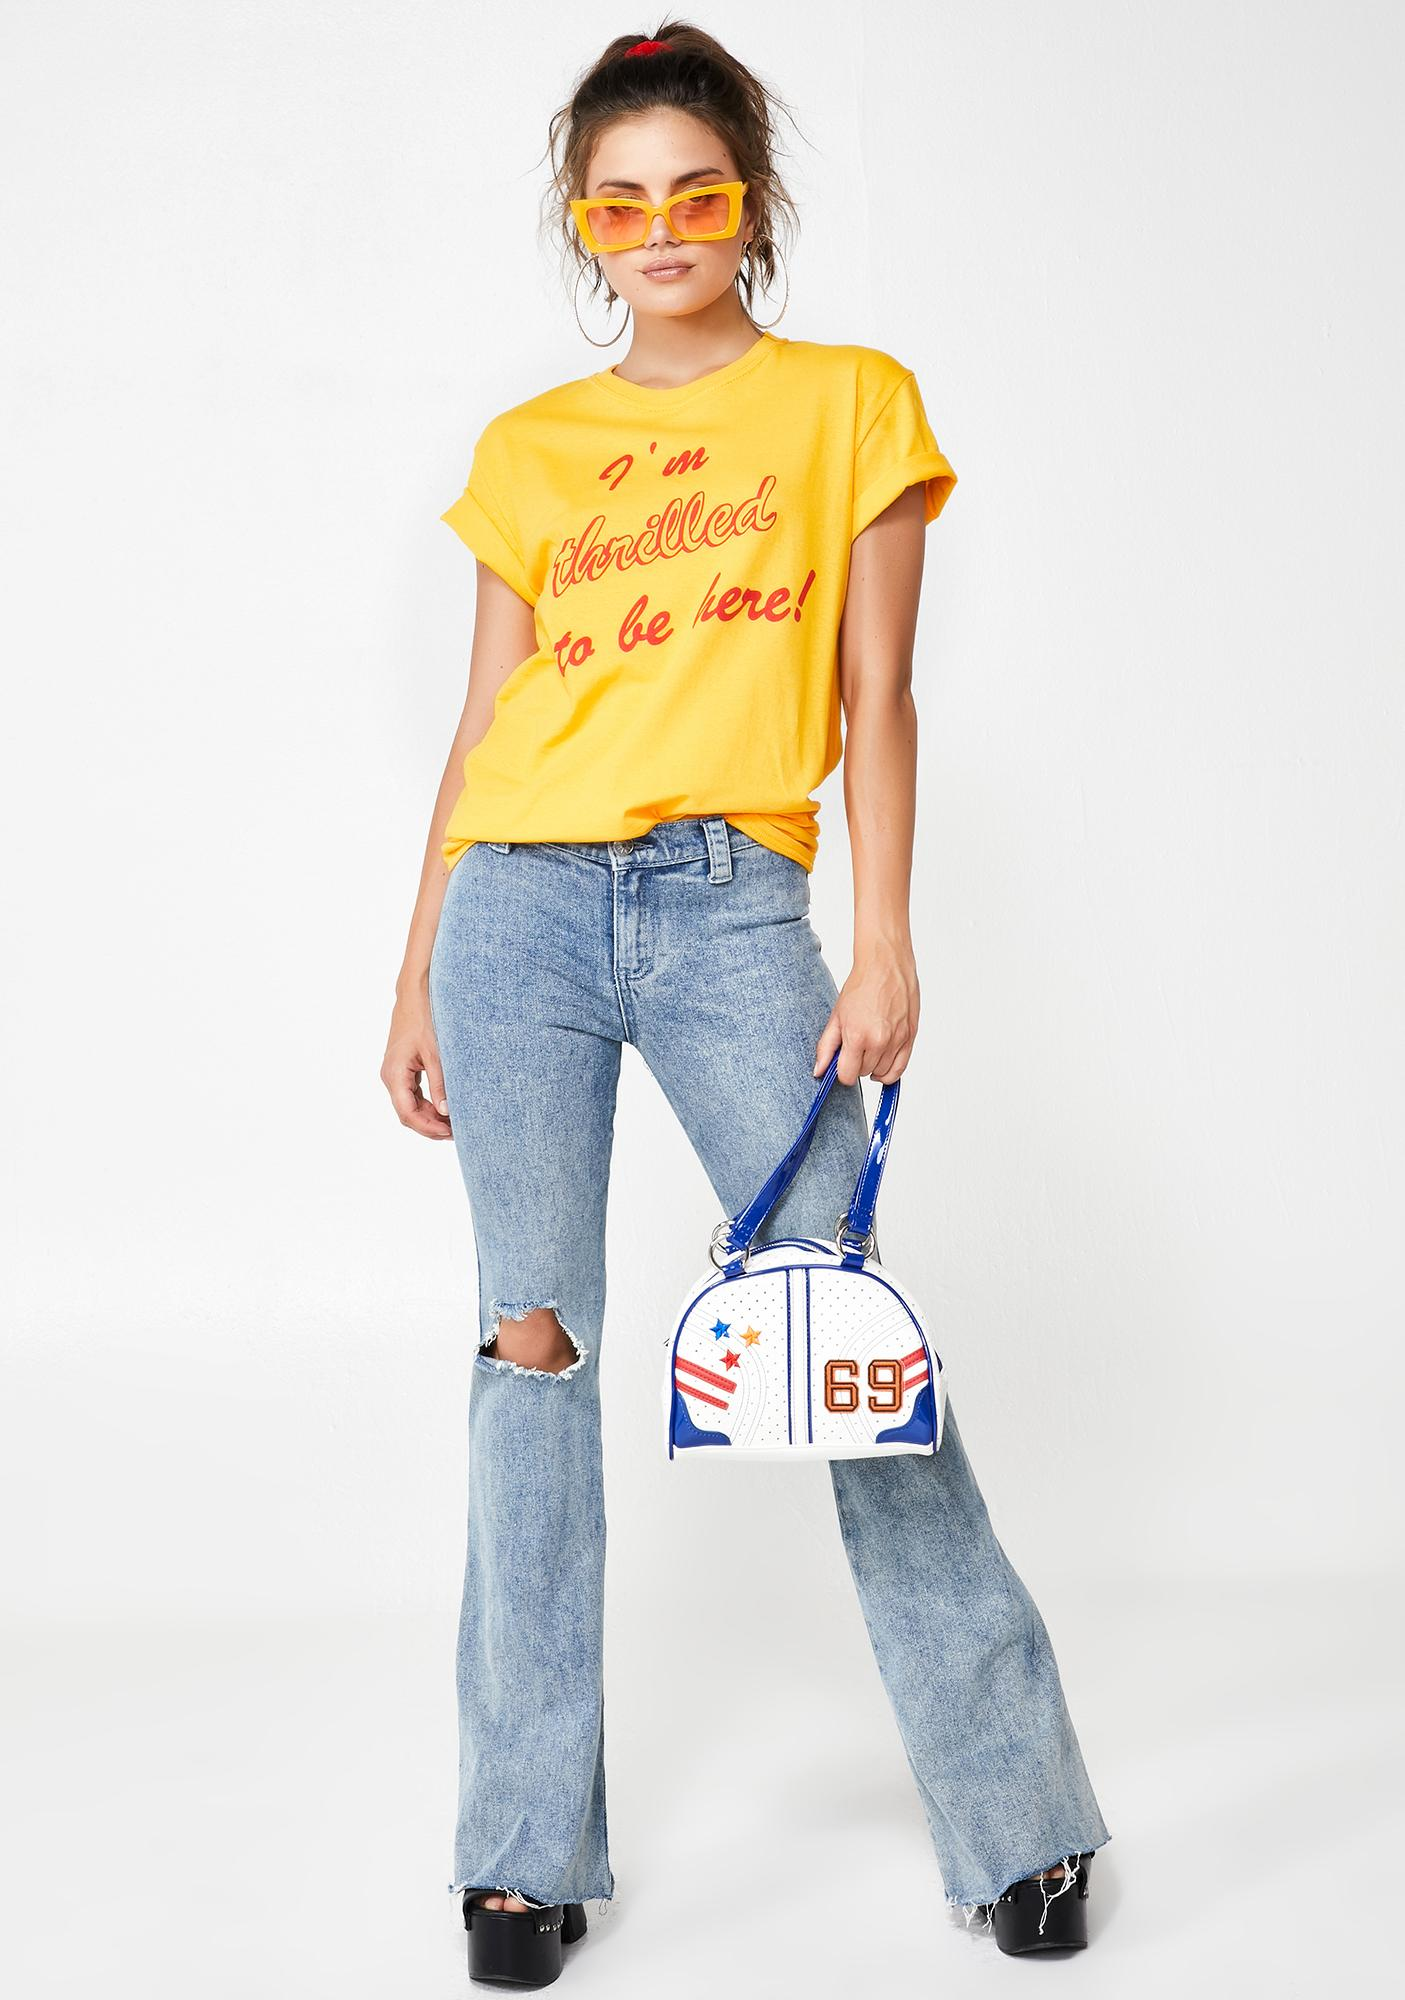 Rosehound Apparel Thrilled To Be Here Tee